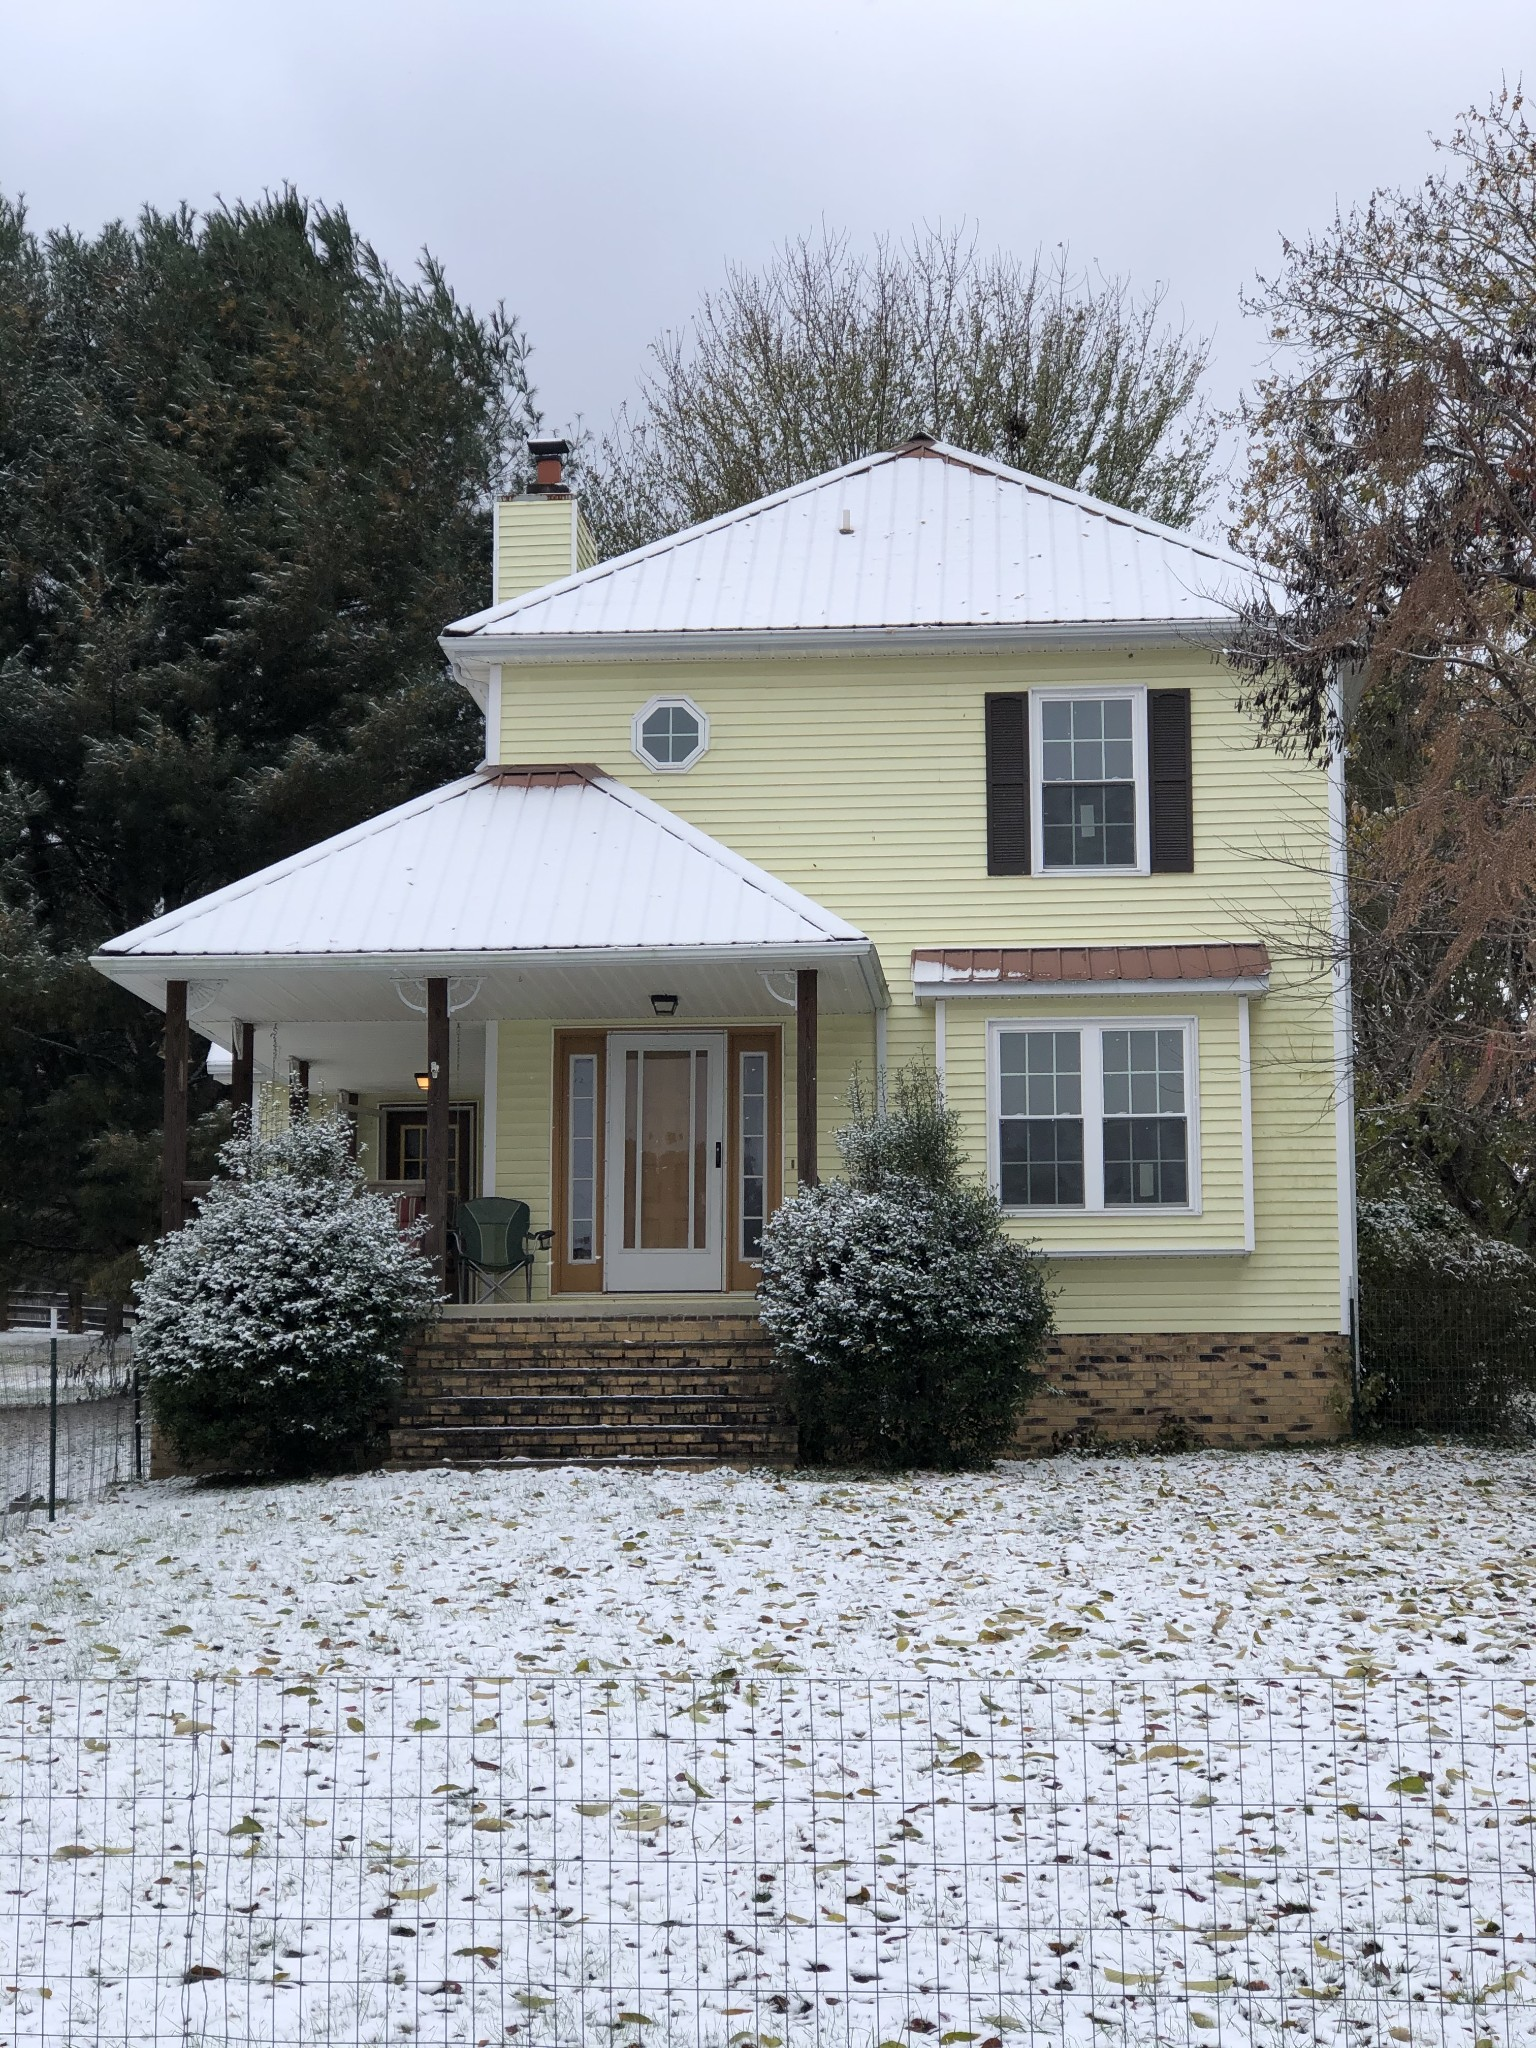 765 McClure St, Red Boiling Springs, TN 37150 - Red Boiling Springs, TN real estate listing